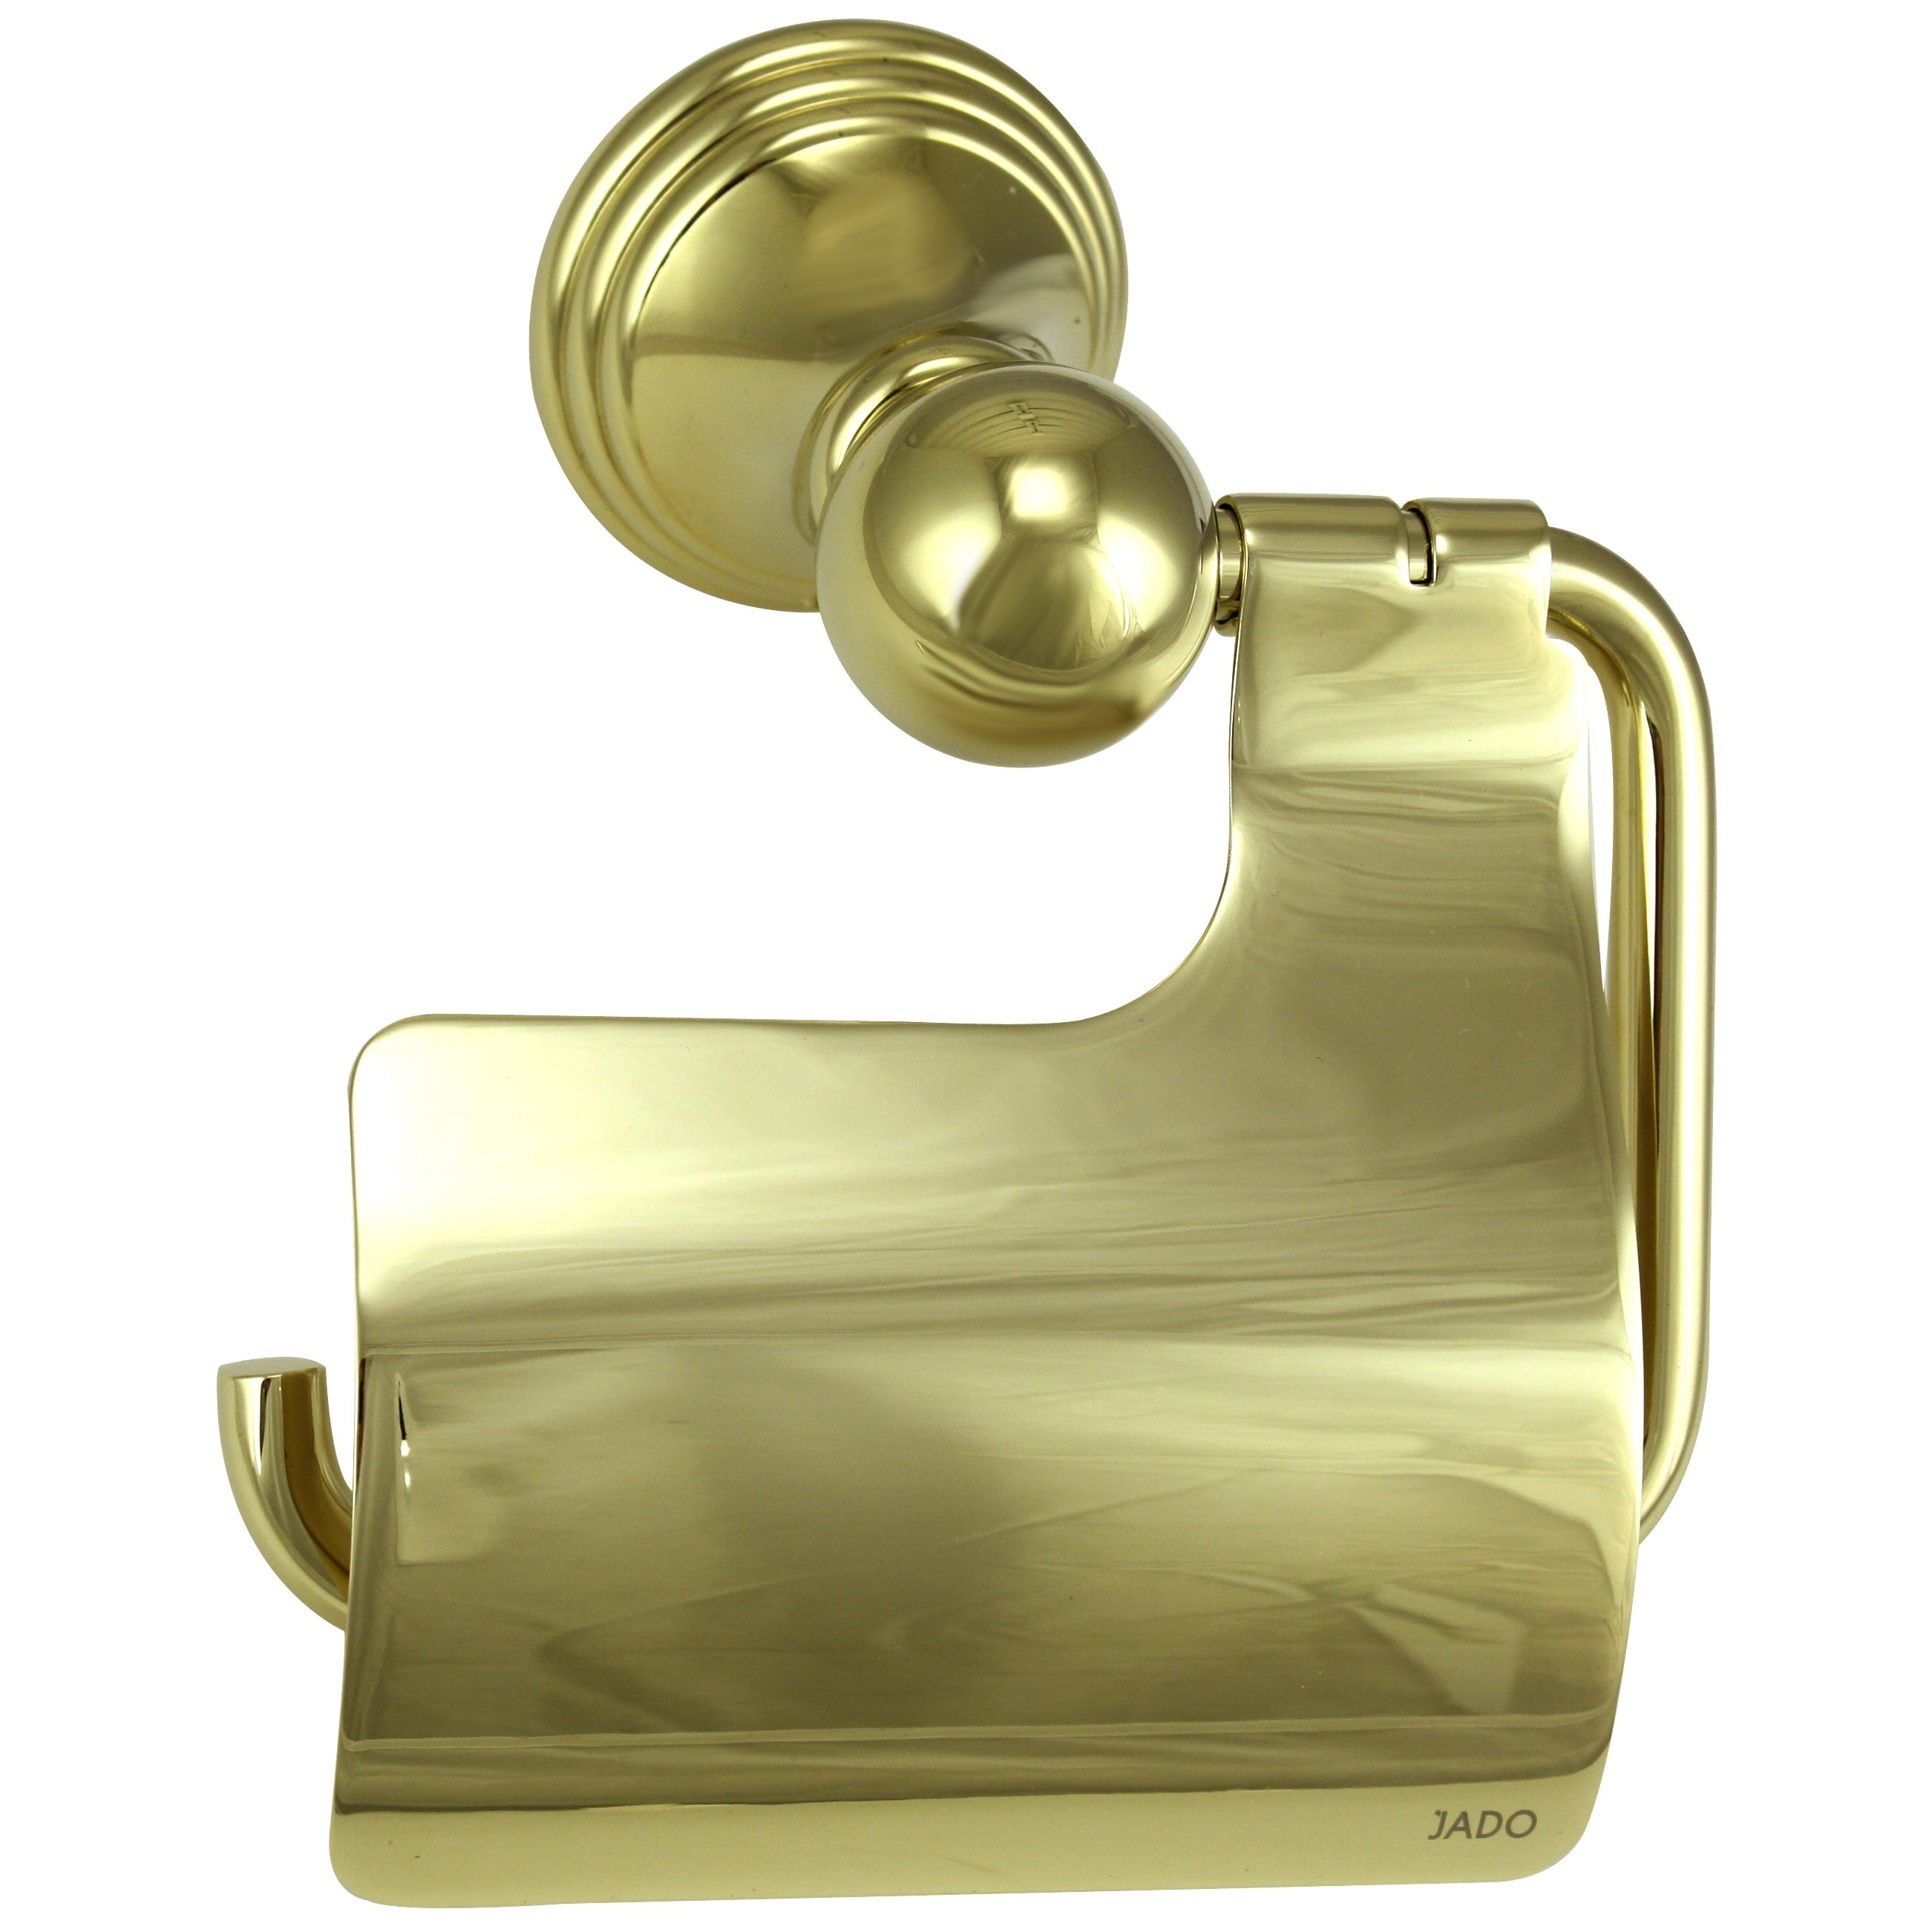 Jado Clic Hooded Diamond Gold Toilet Paper Holder